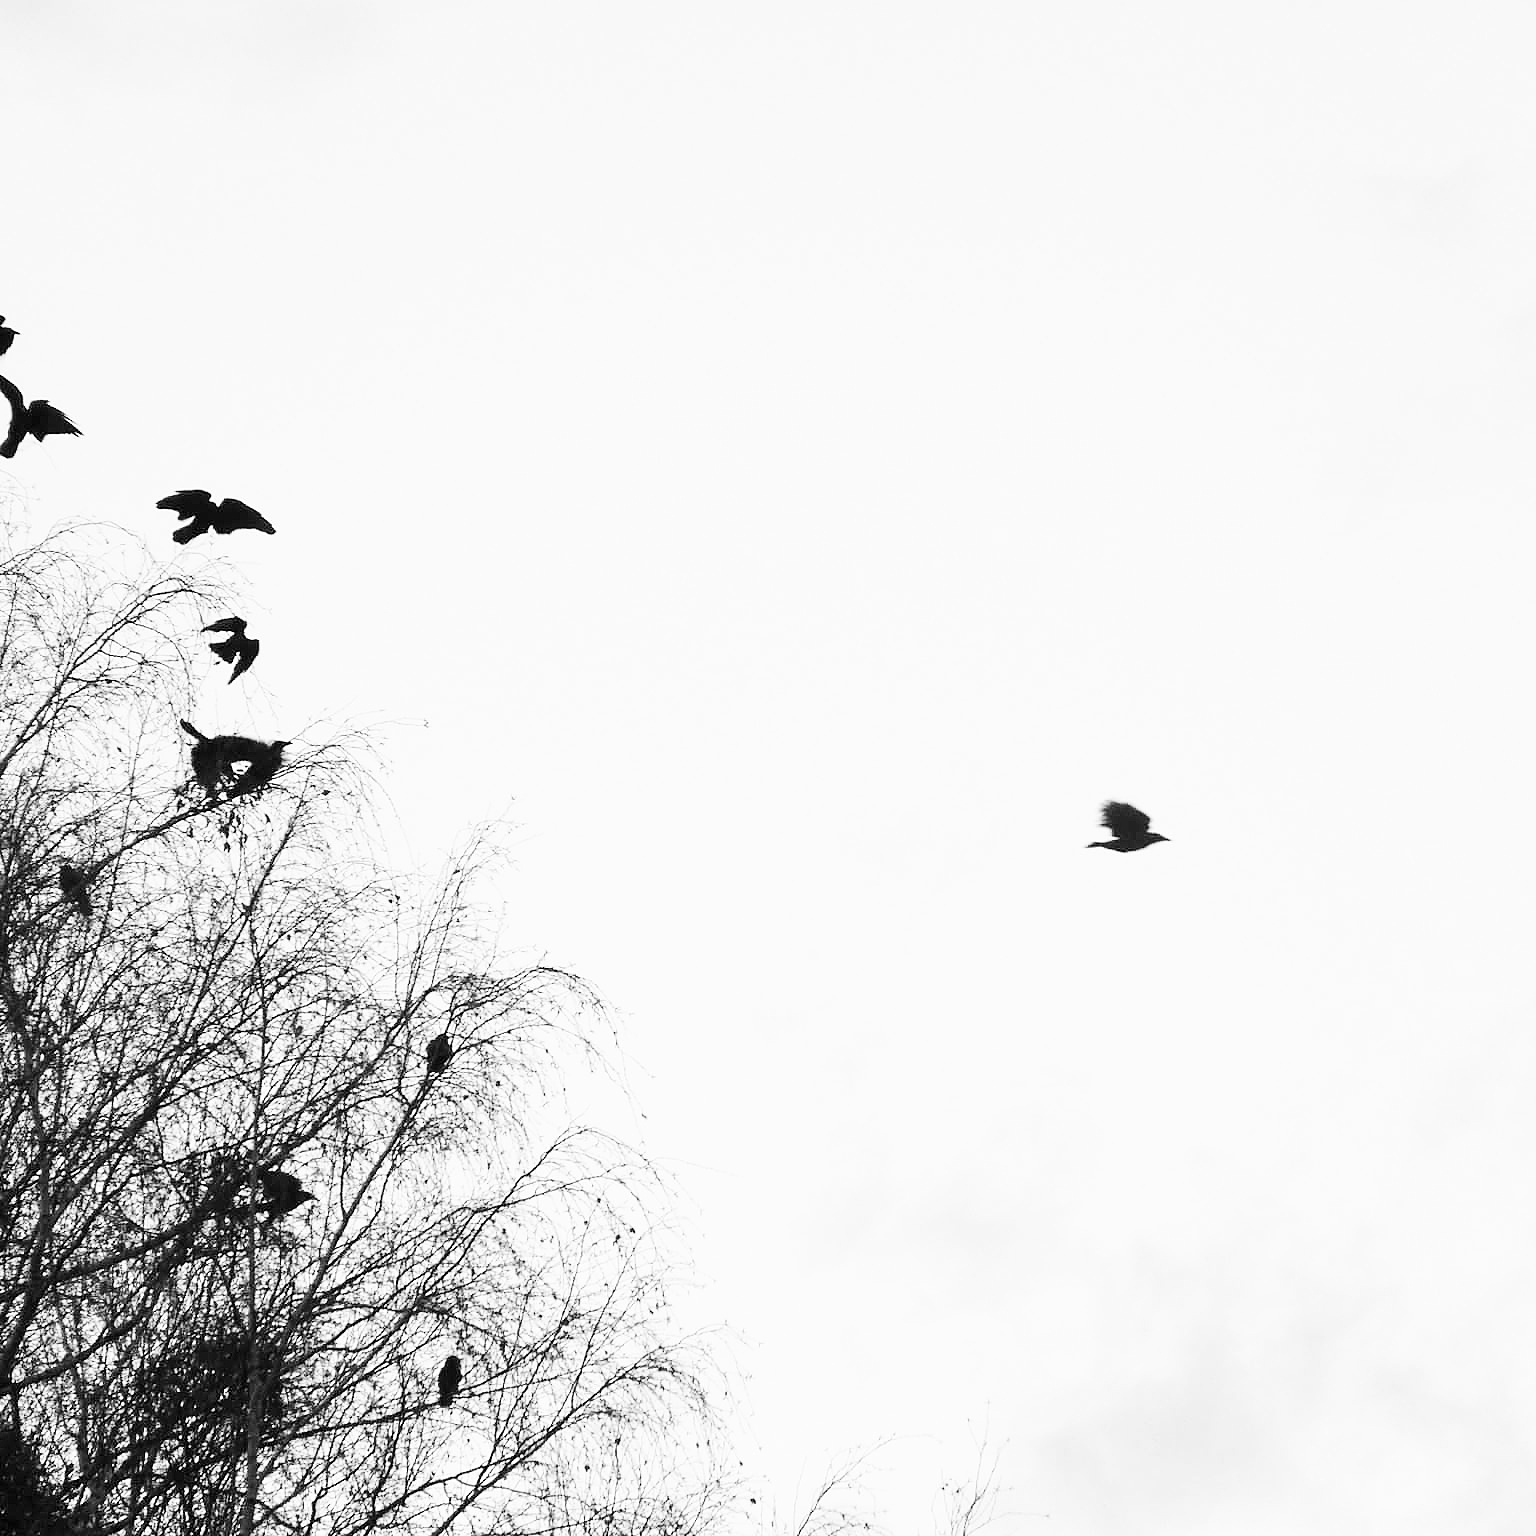 bird-fly-sky-black-and-white